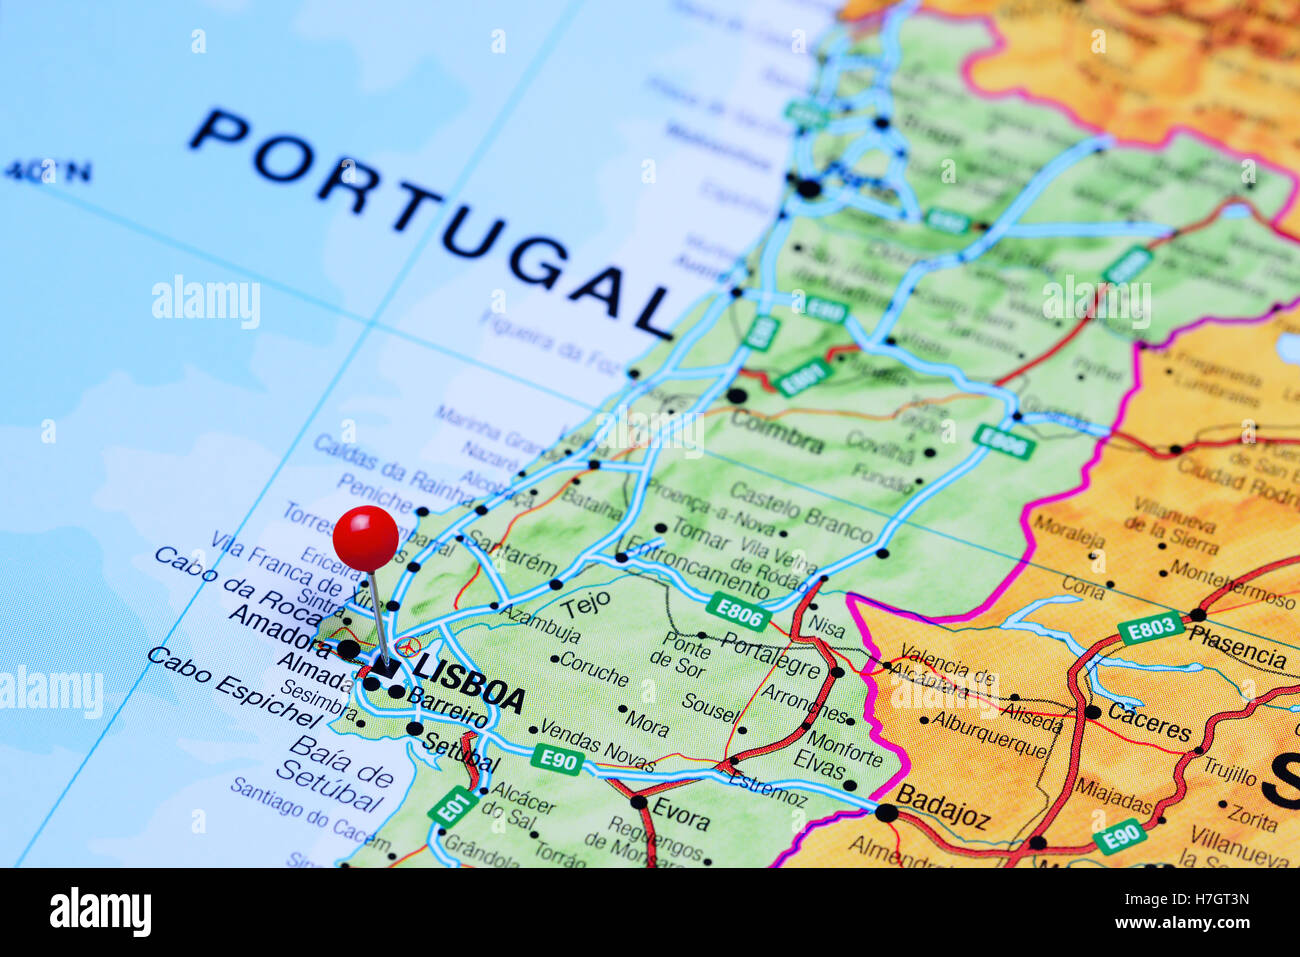 Lisbon Pinned On A Map Of Portugal Stock Photo 125145321 Alamy